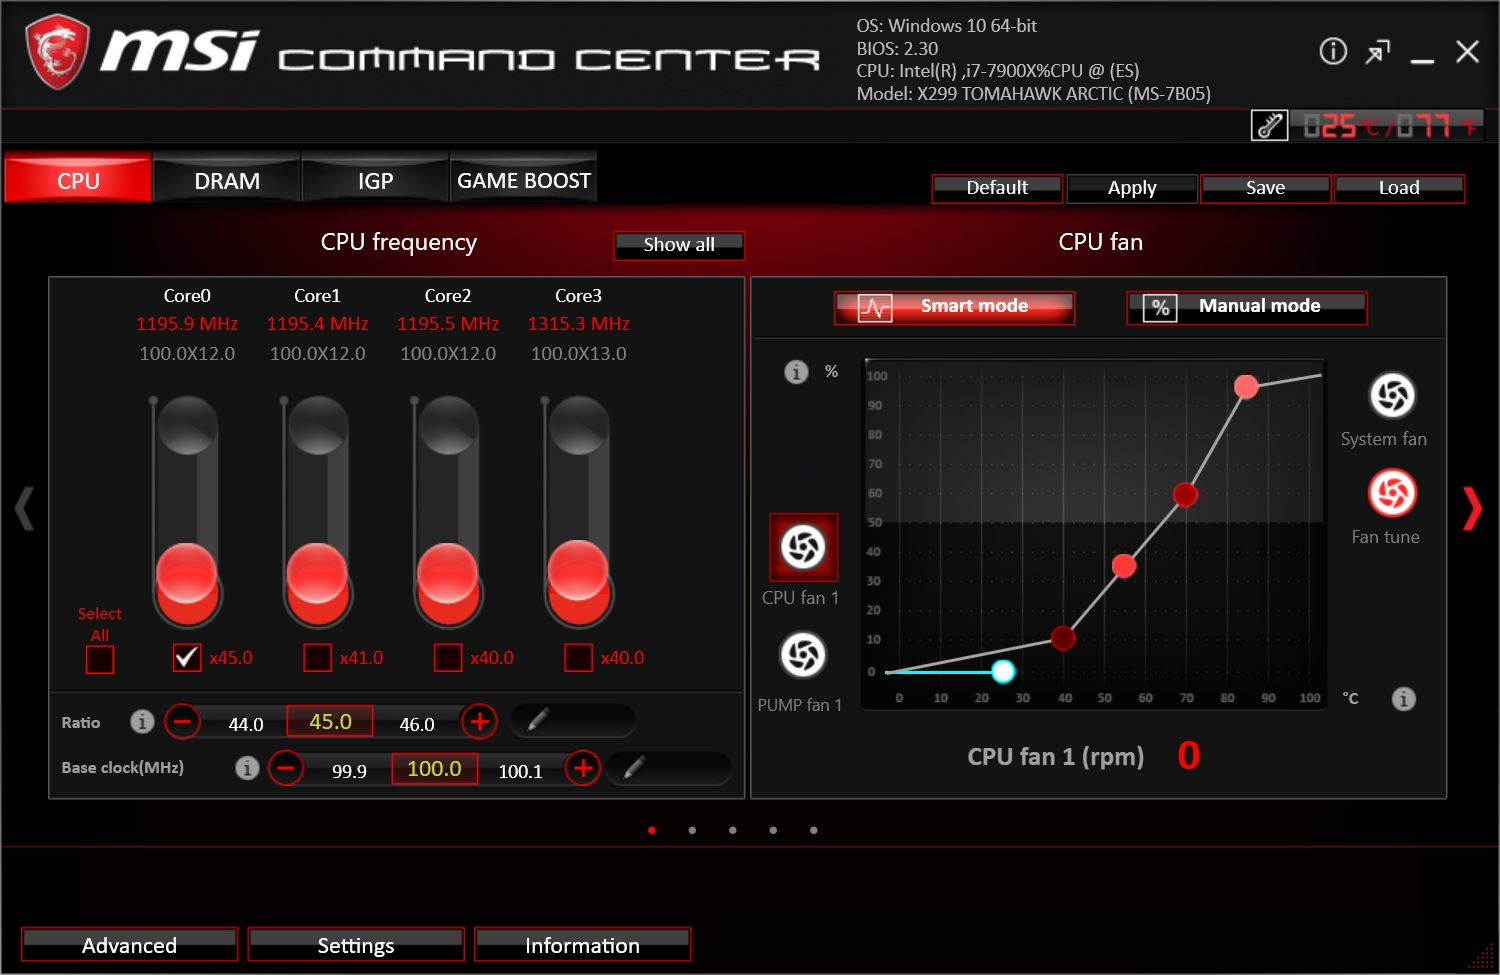 BIOS and Software - The MSI X299 Tomahawk Arctic Motherboard Review